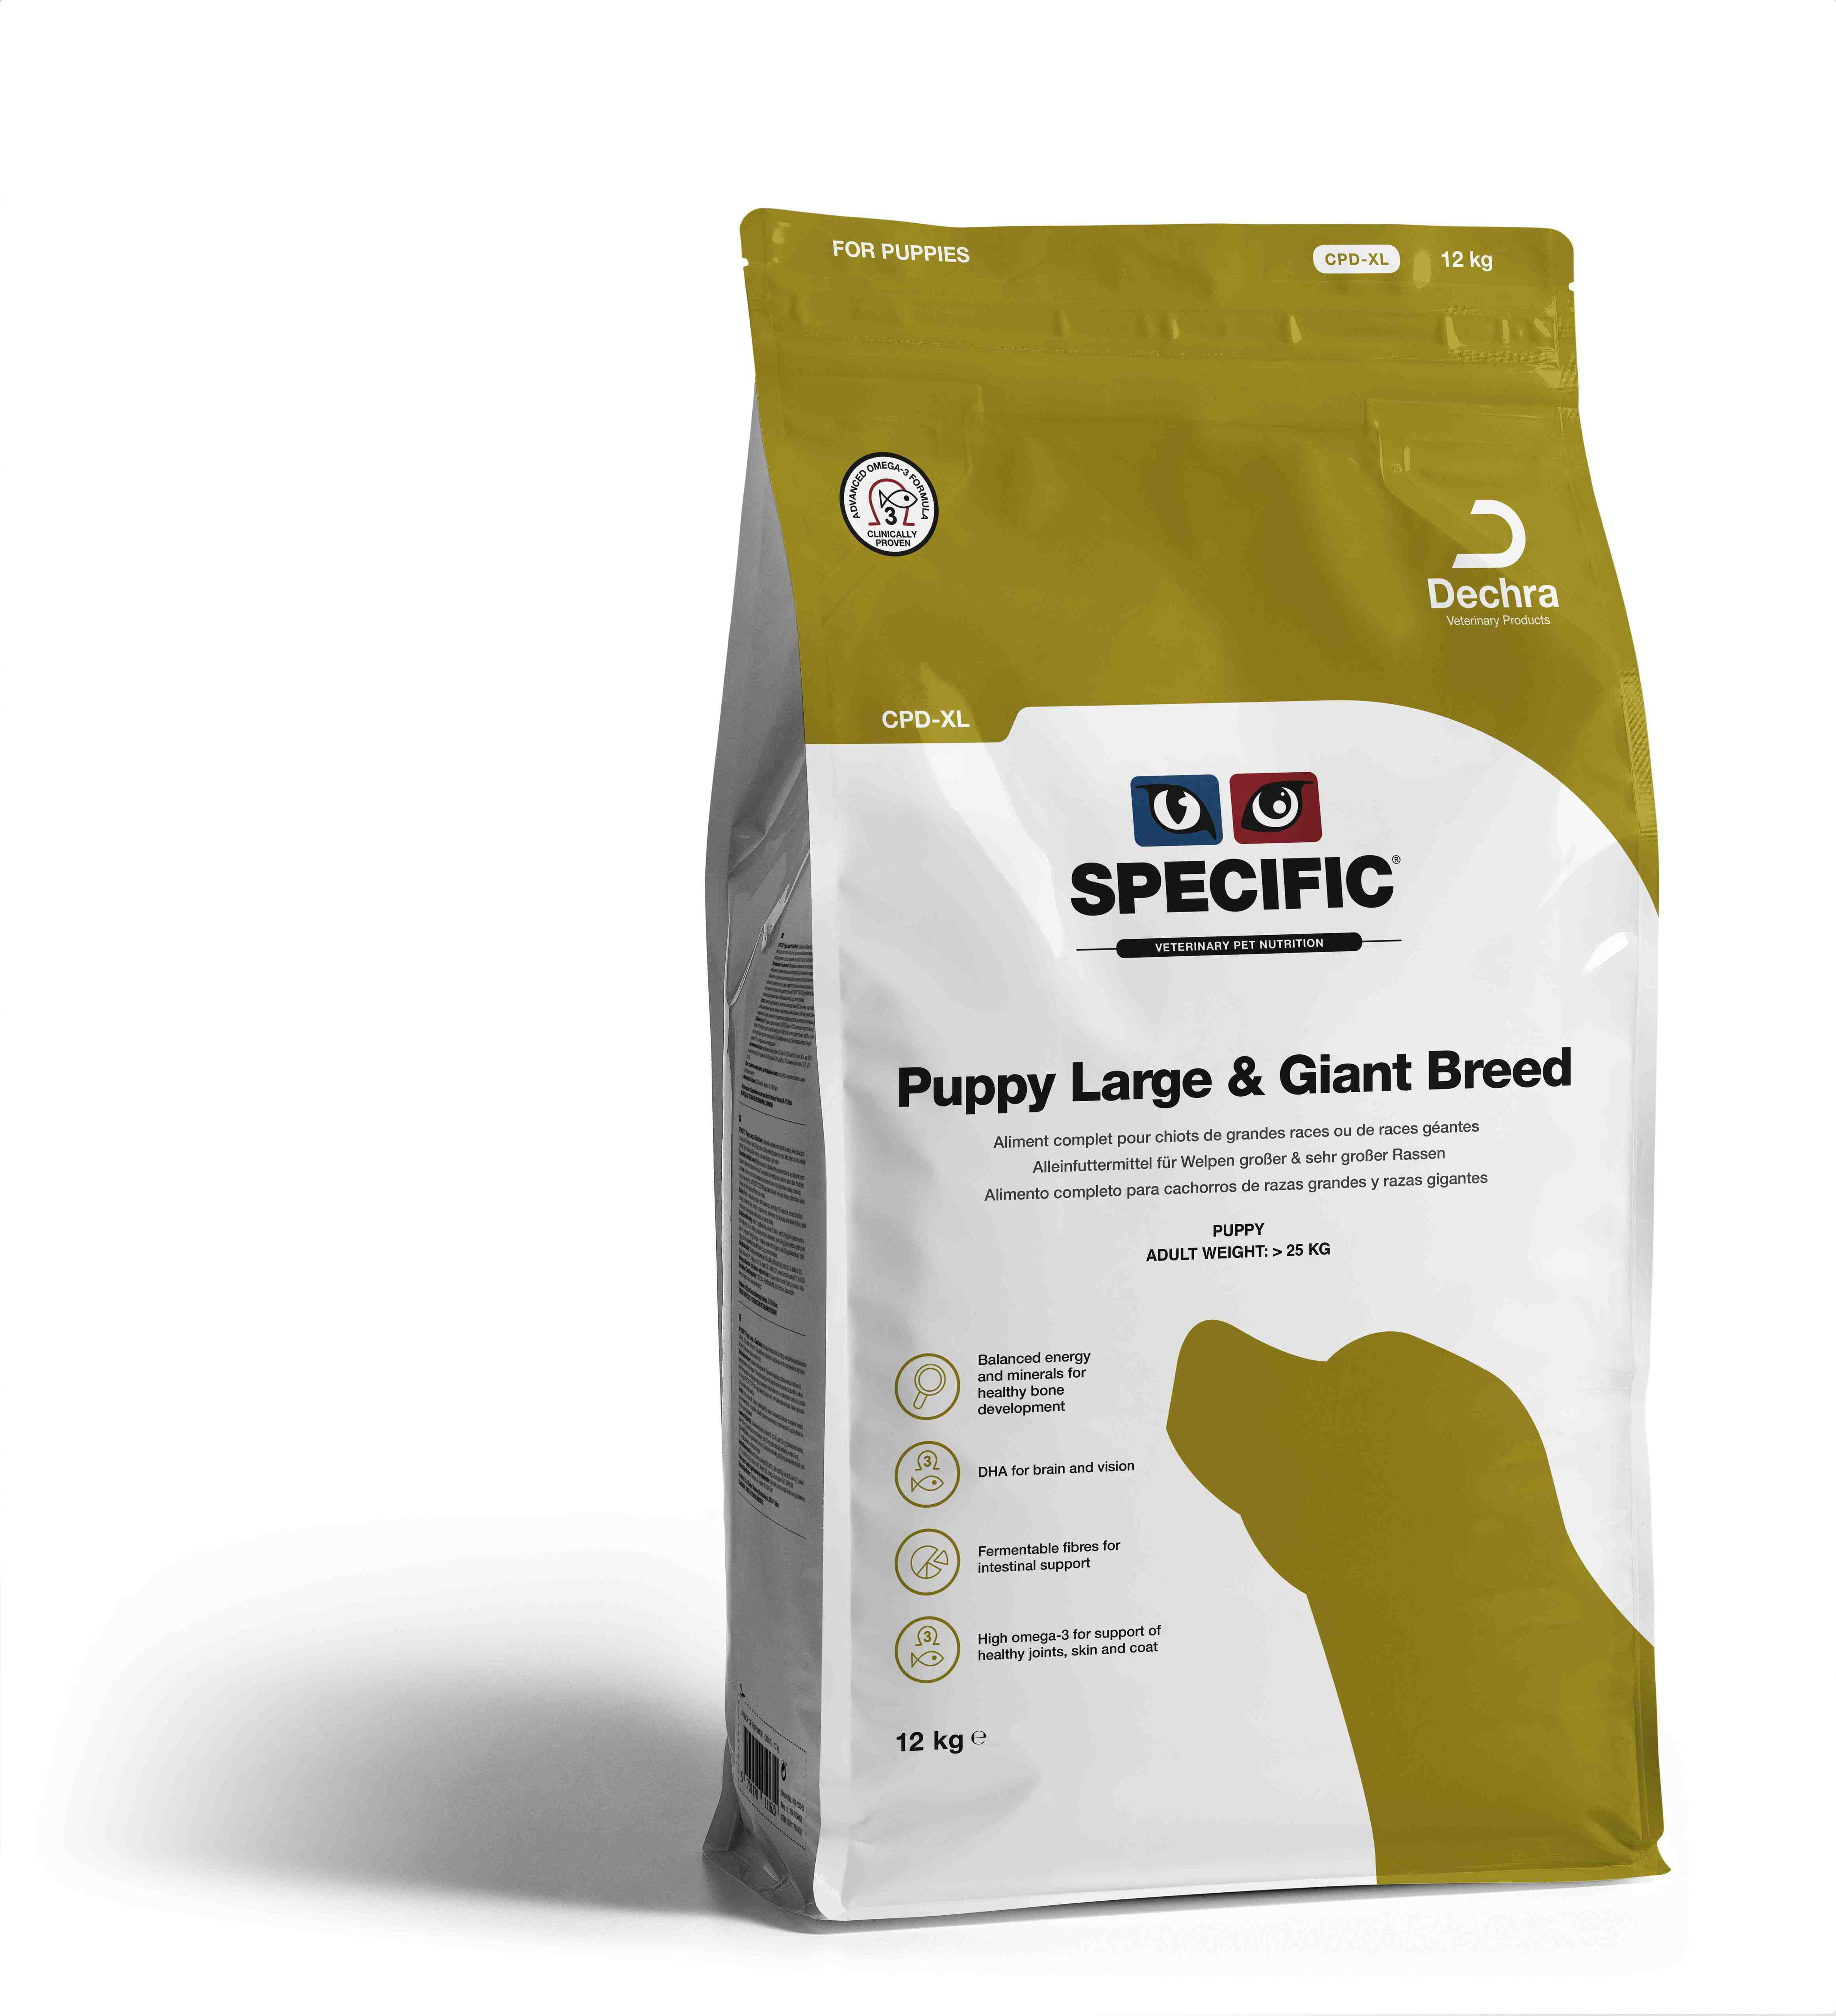 Puppy Large & Gigant Breed CPD-XL - 12 kg